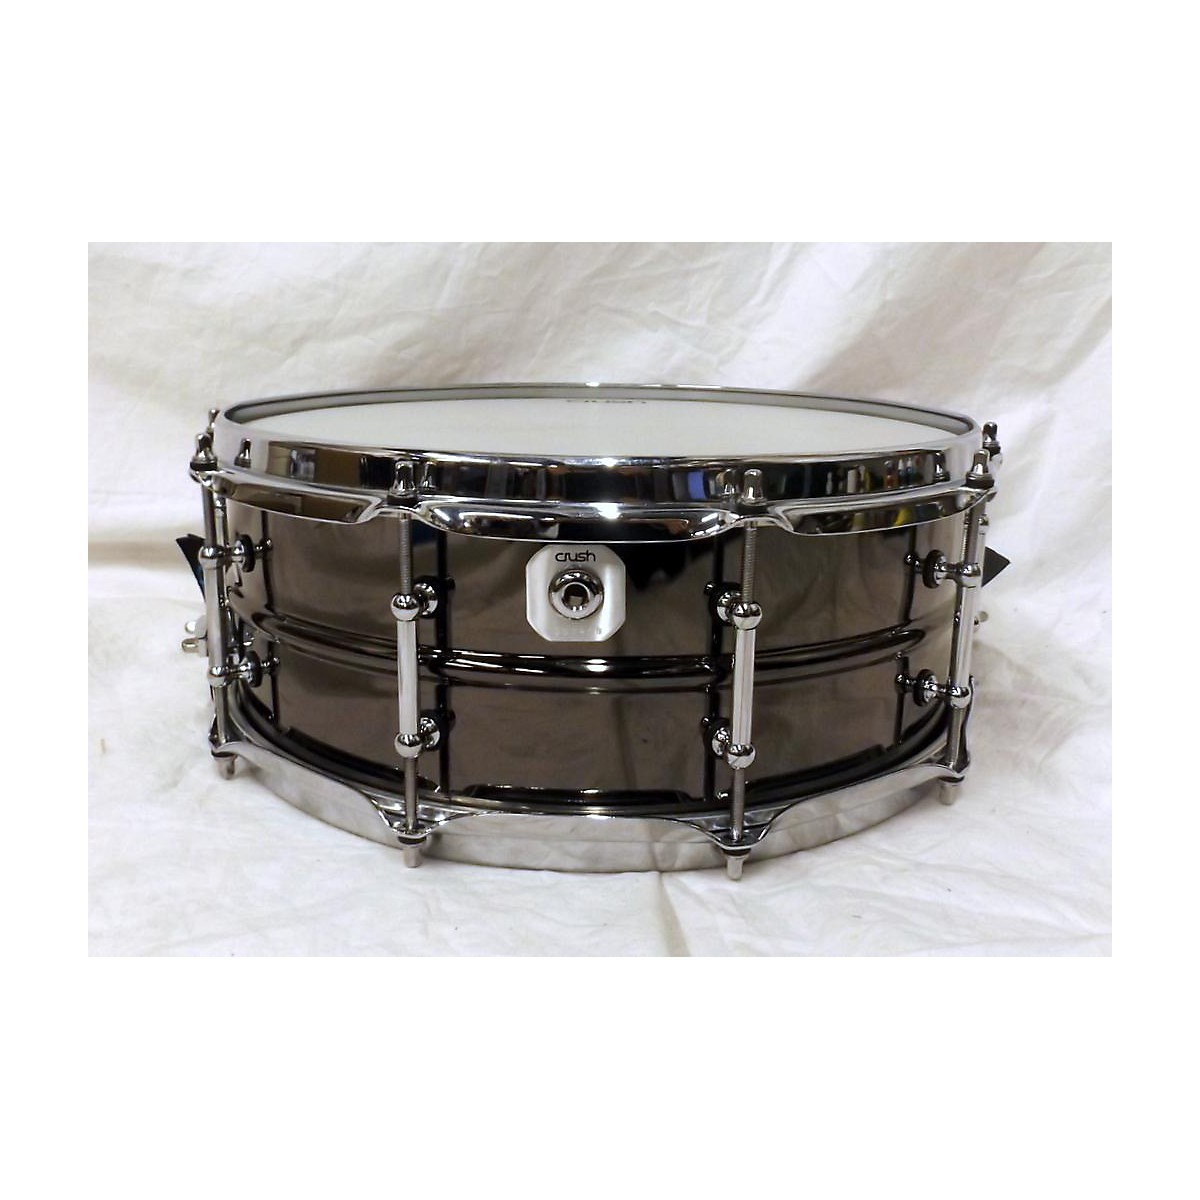 Crush Drums & Percussion 5.5X14 ROLLED BRUSHED NICKLE Drum